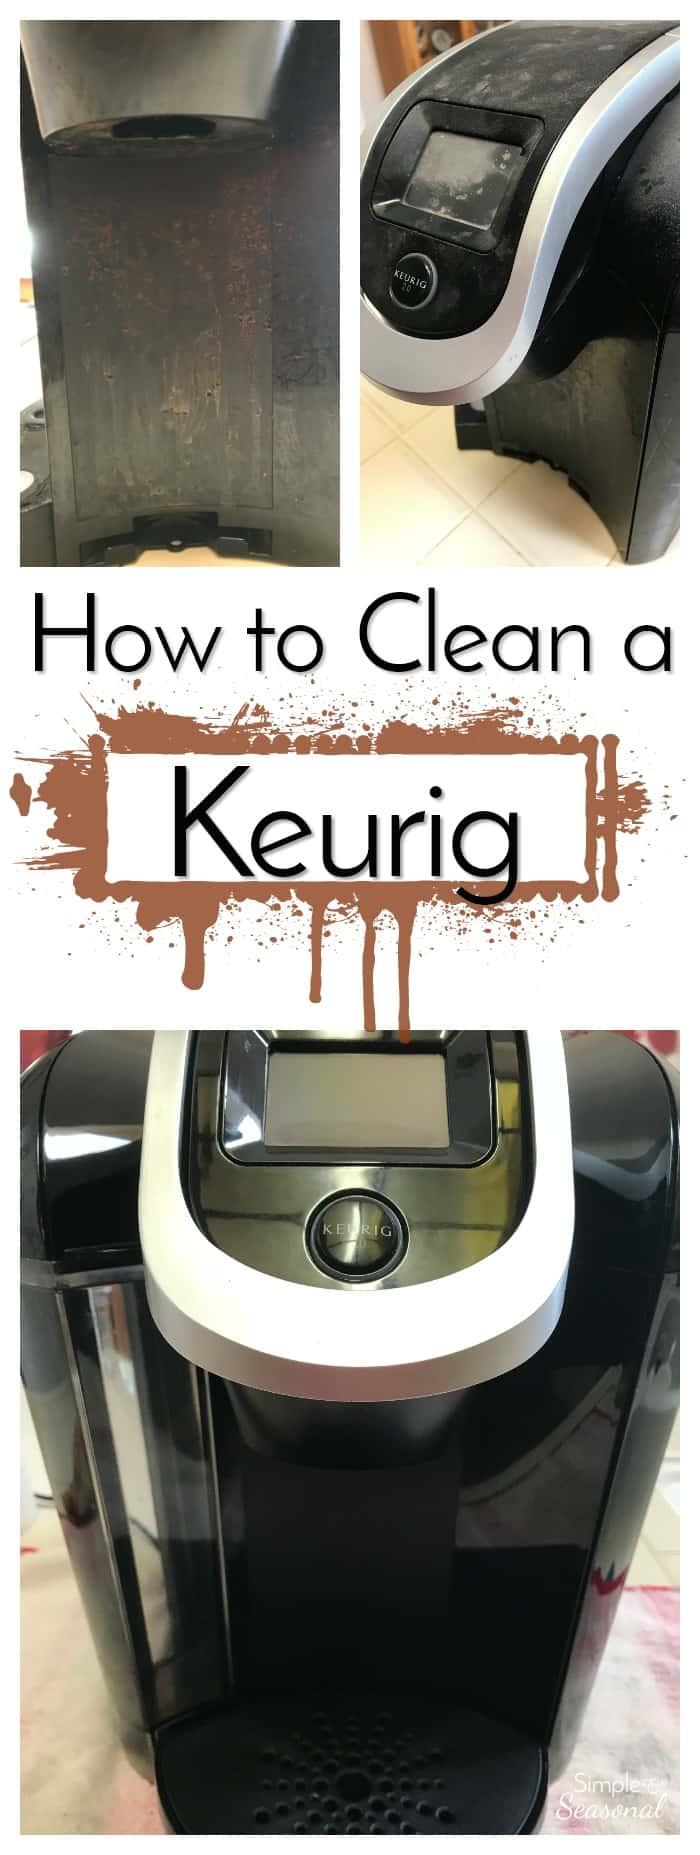 If you own a Keurig coffee brewer, you need to know how to deep clean a Keurig! It will add to your coffee maker's life and even help your morning cup taste a little better!#Keurig #CleaningTip #Coffee #Cleaner via @nmburk